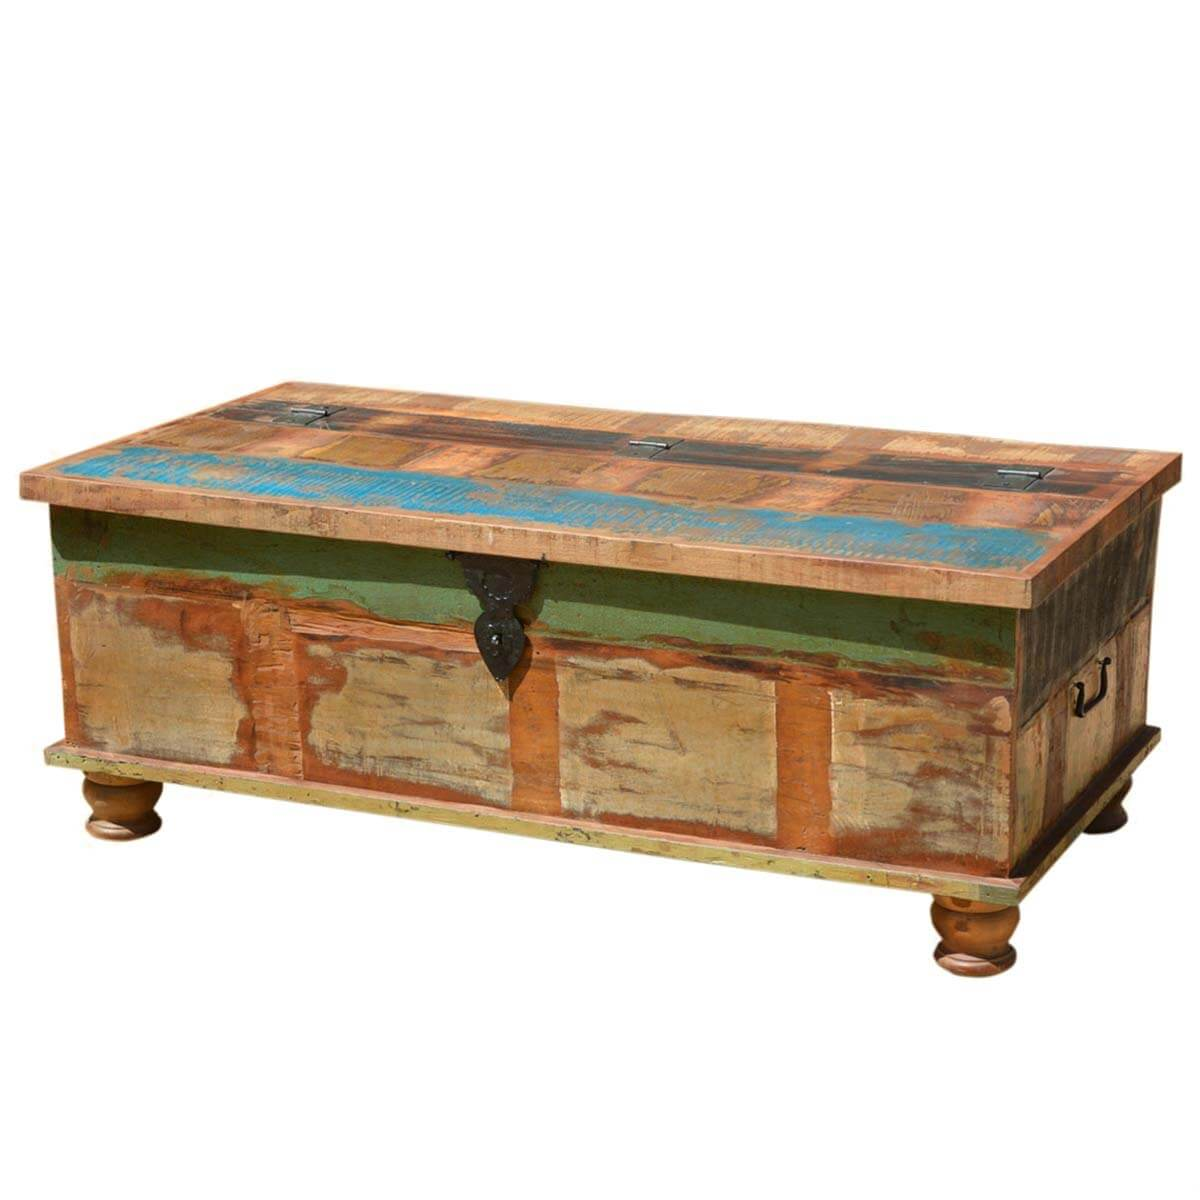 Grinnell rustic reclaimed wood coffee table storage trunk Recycled wood coffee table